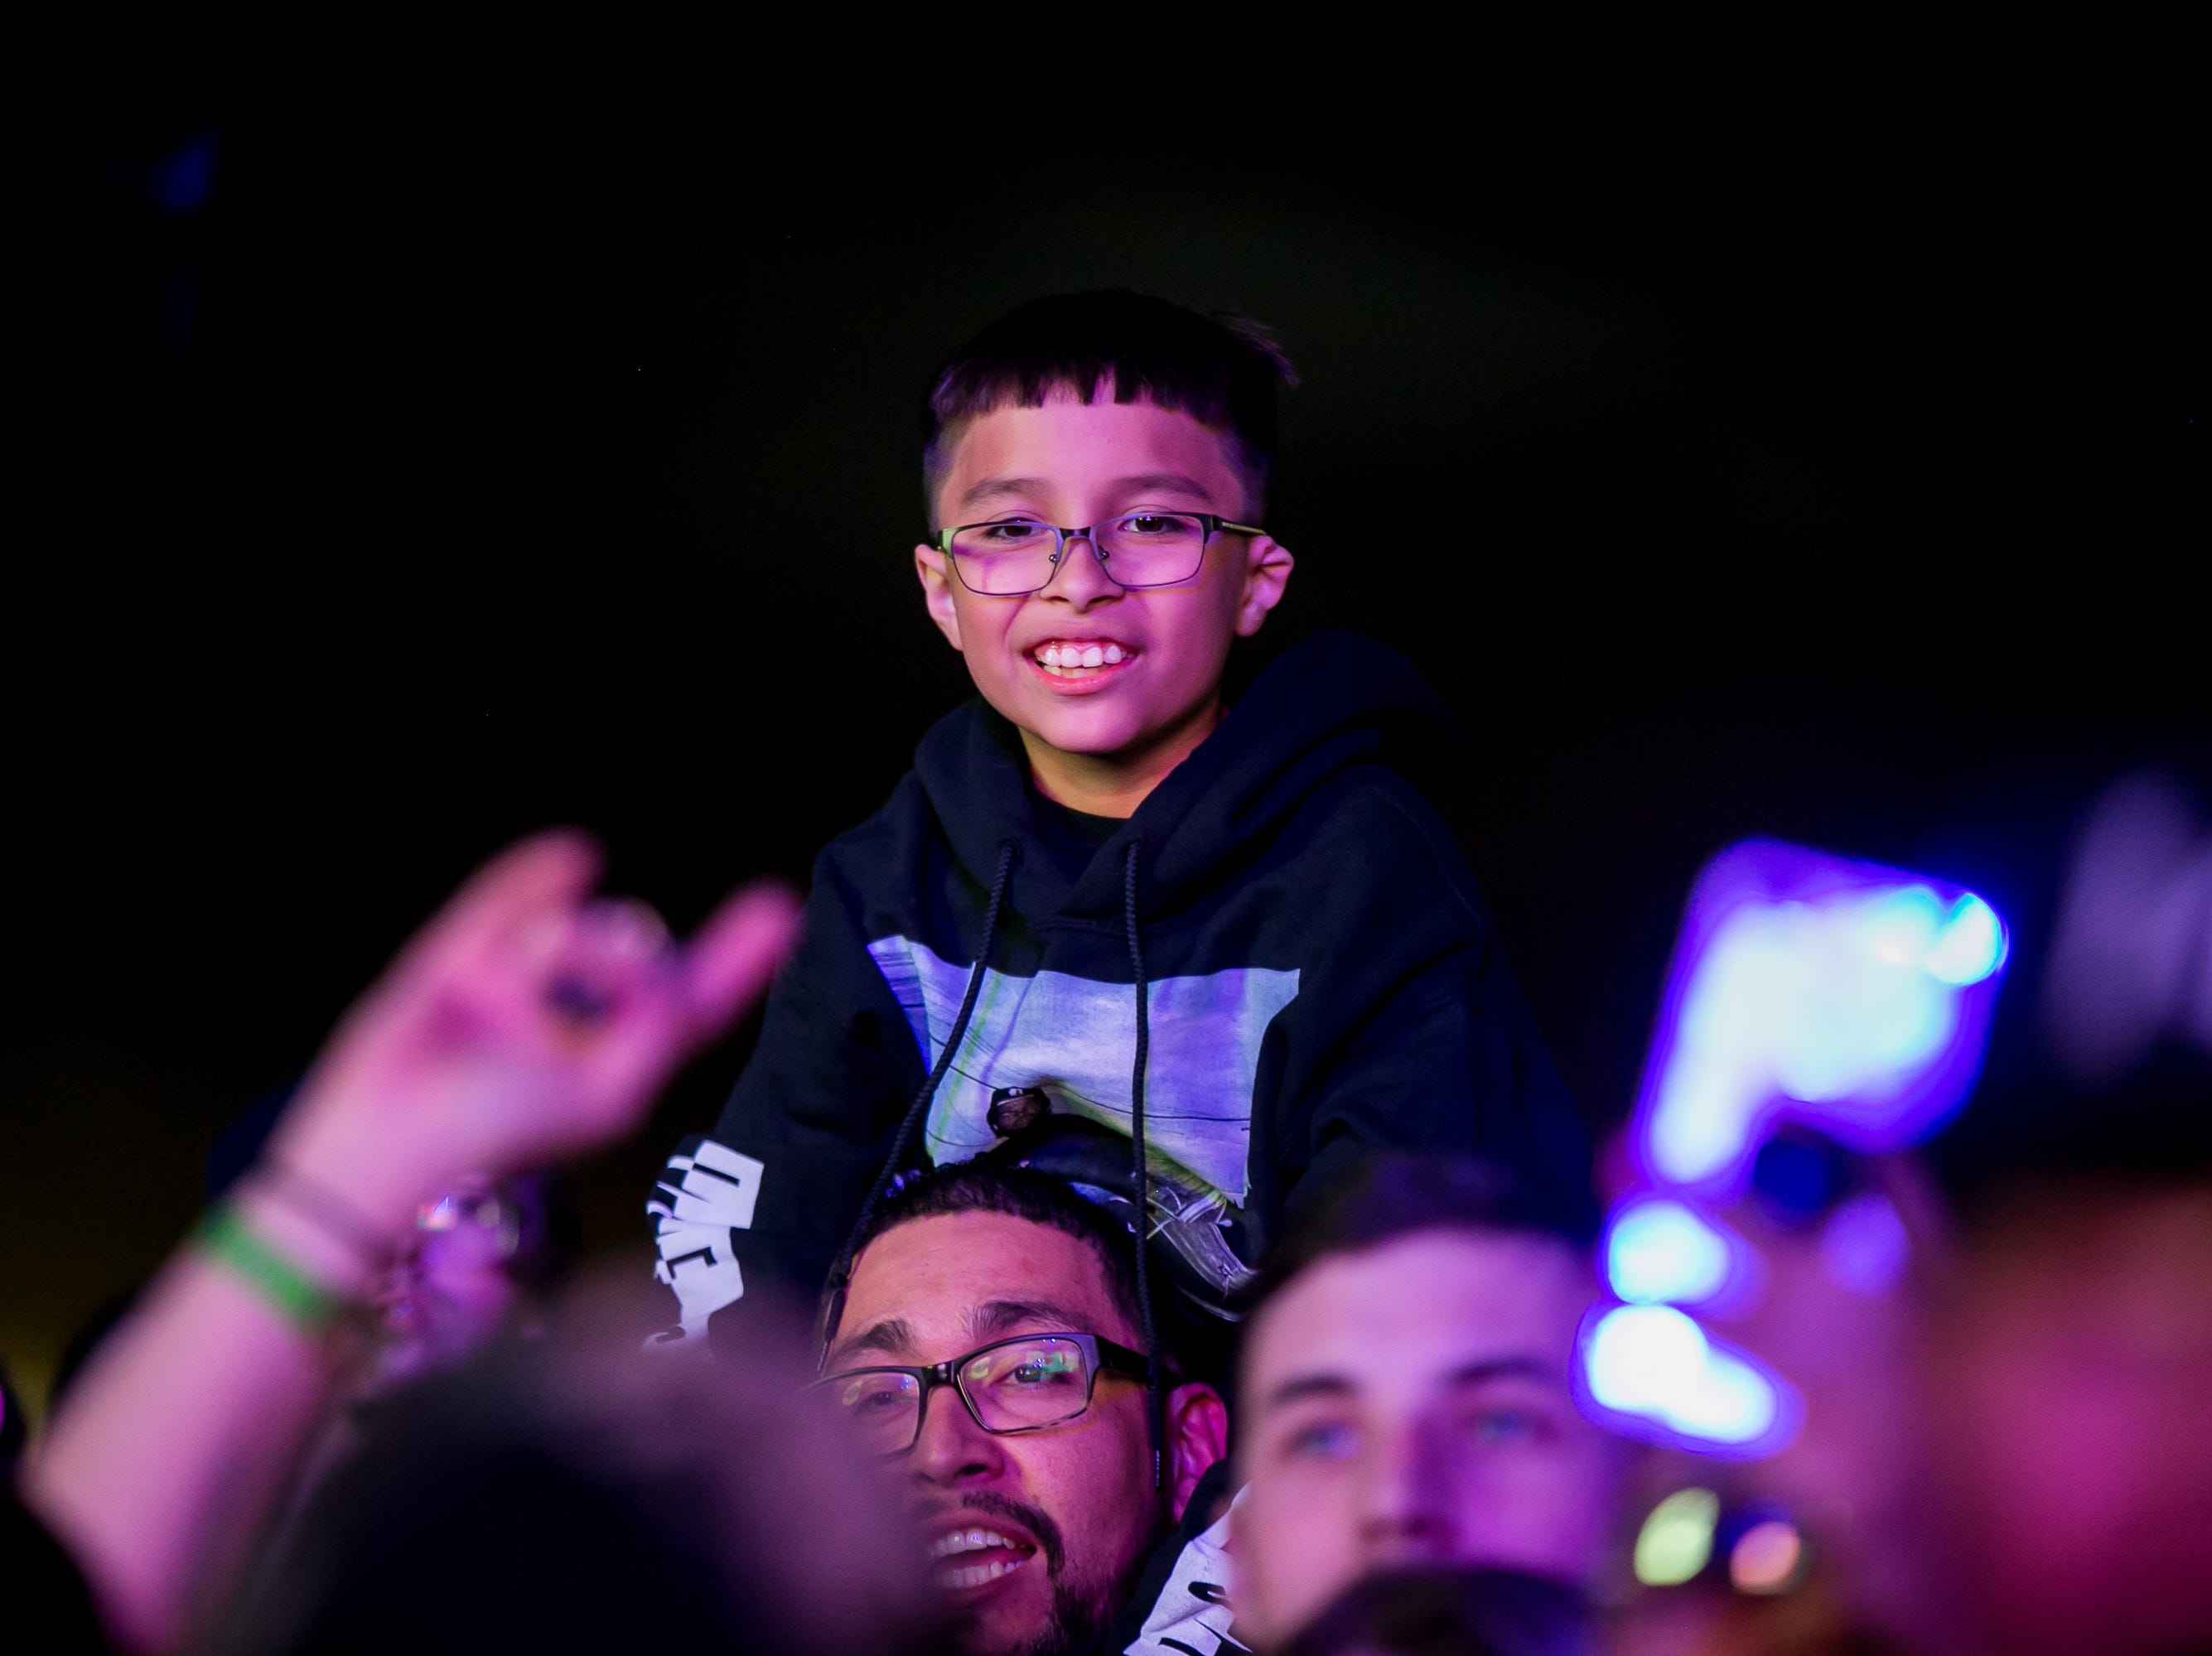 A young man enjoyed a performance at Pot of Gold Music Festival at Steele Indian School Park on Friday, March 15, 2019.